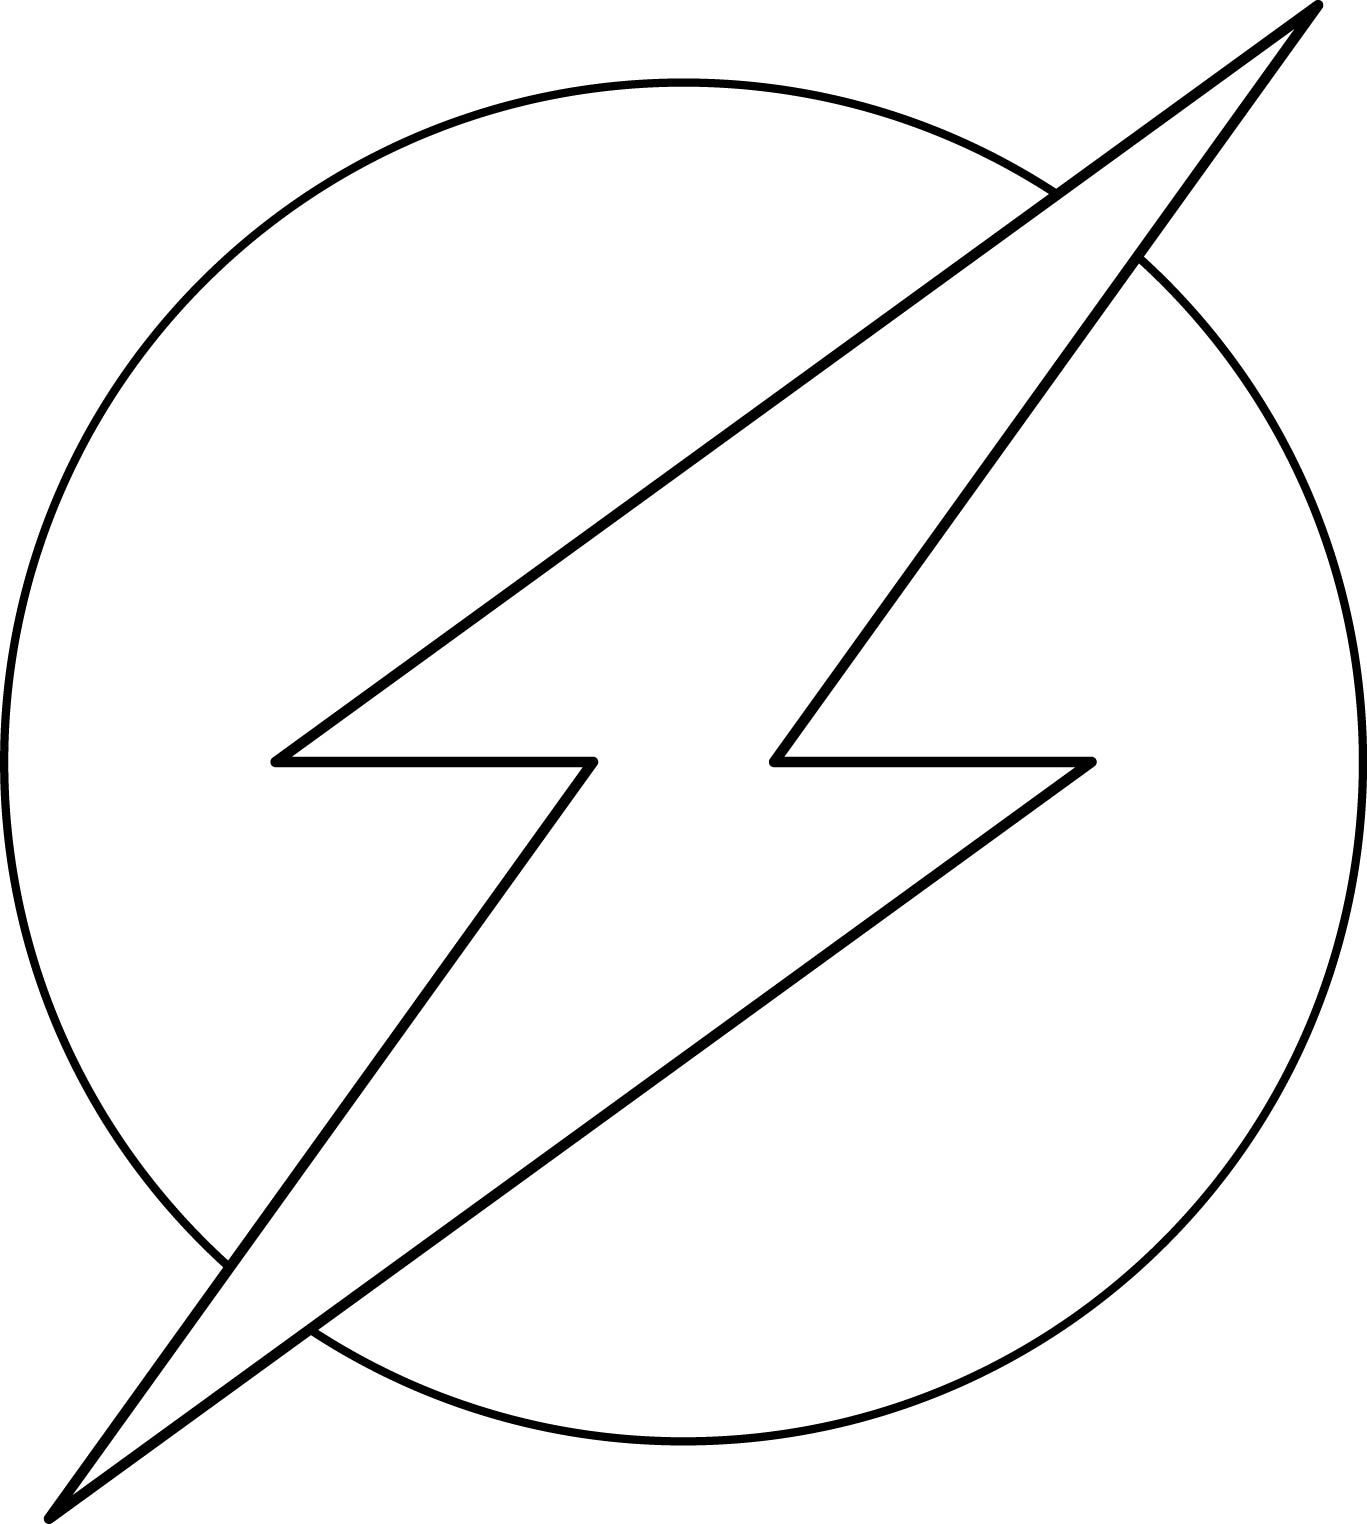 The Flash superhero logo. Add another outer circle and you